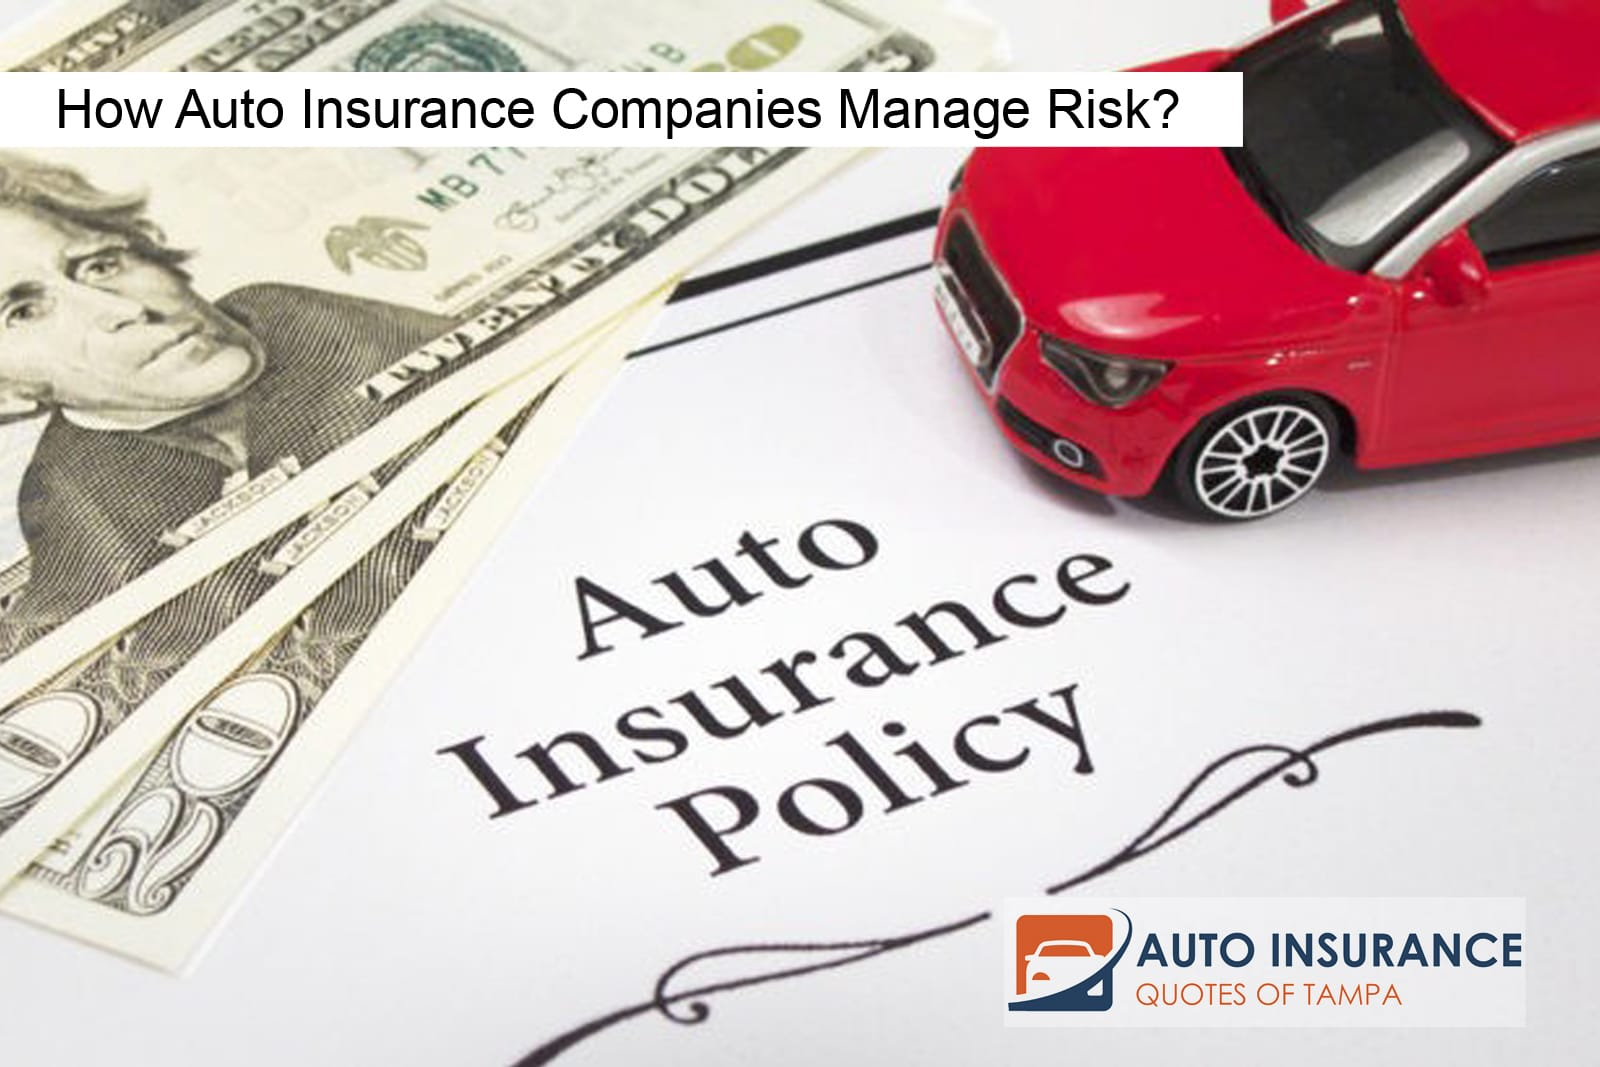 How Auto Insurance Companies Manage Risk?